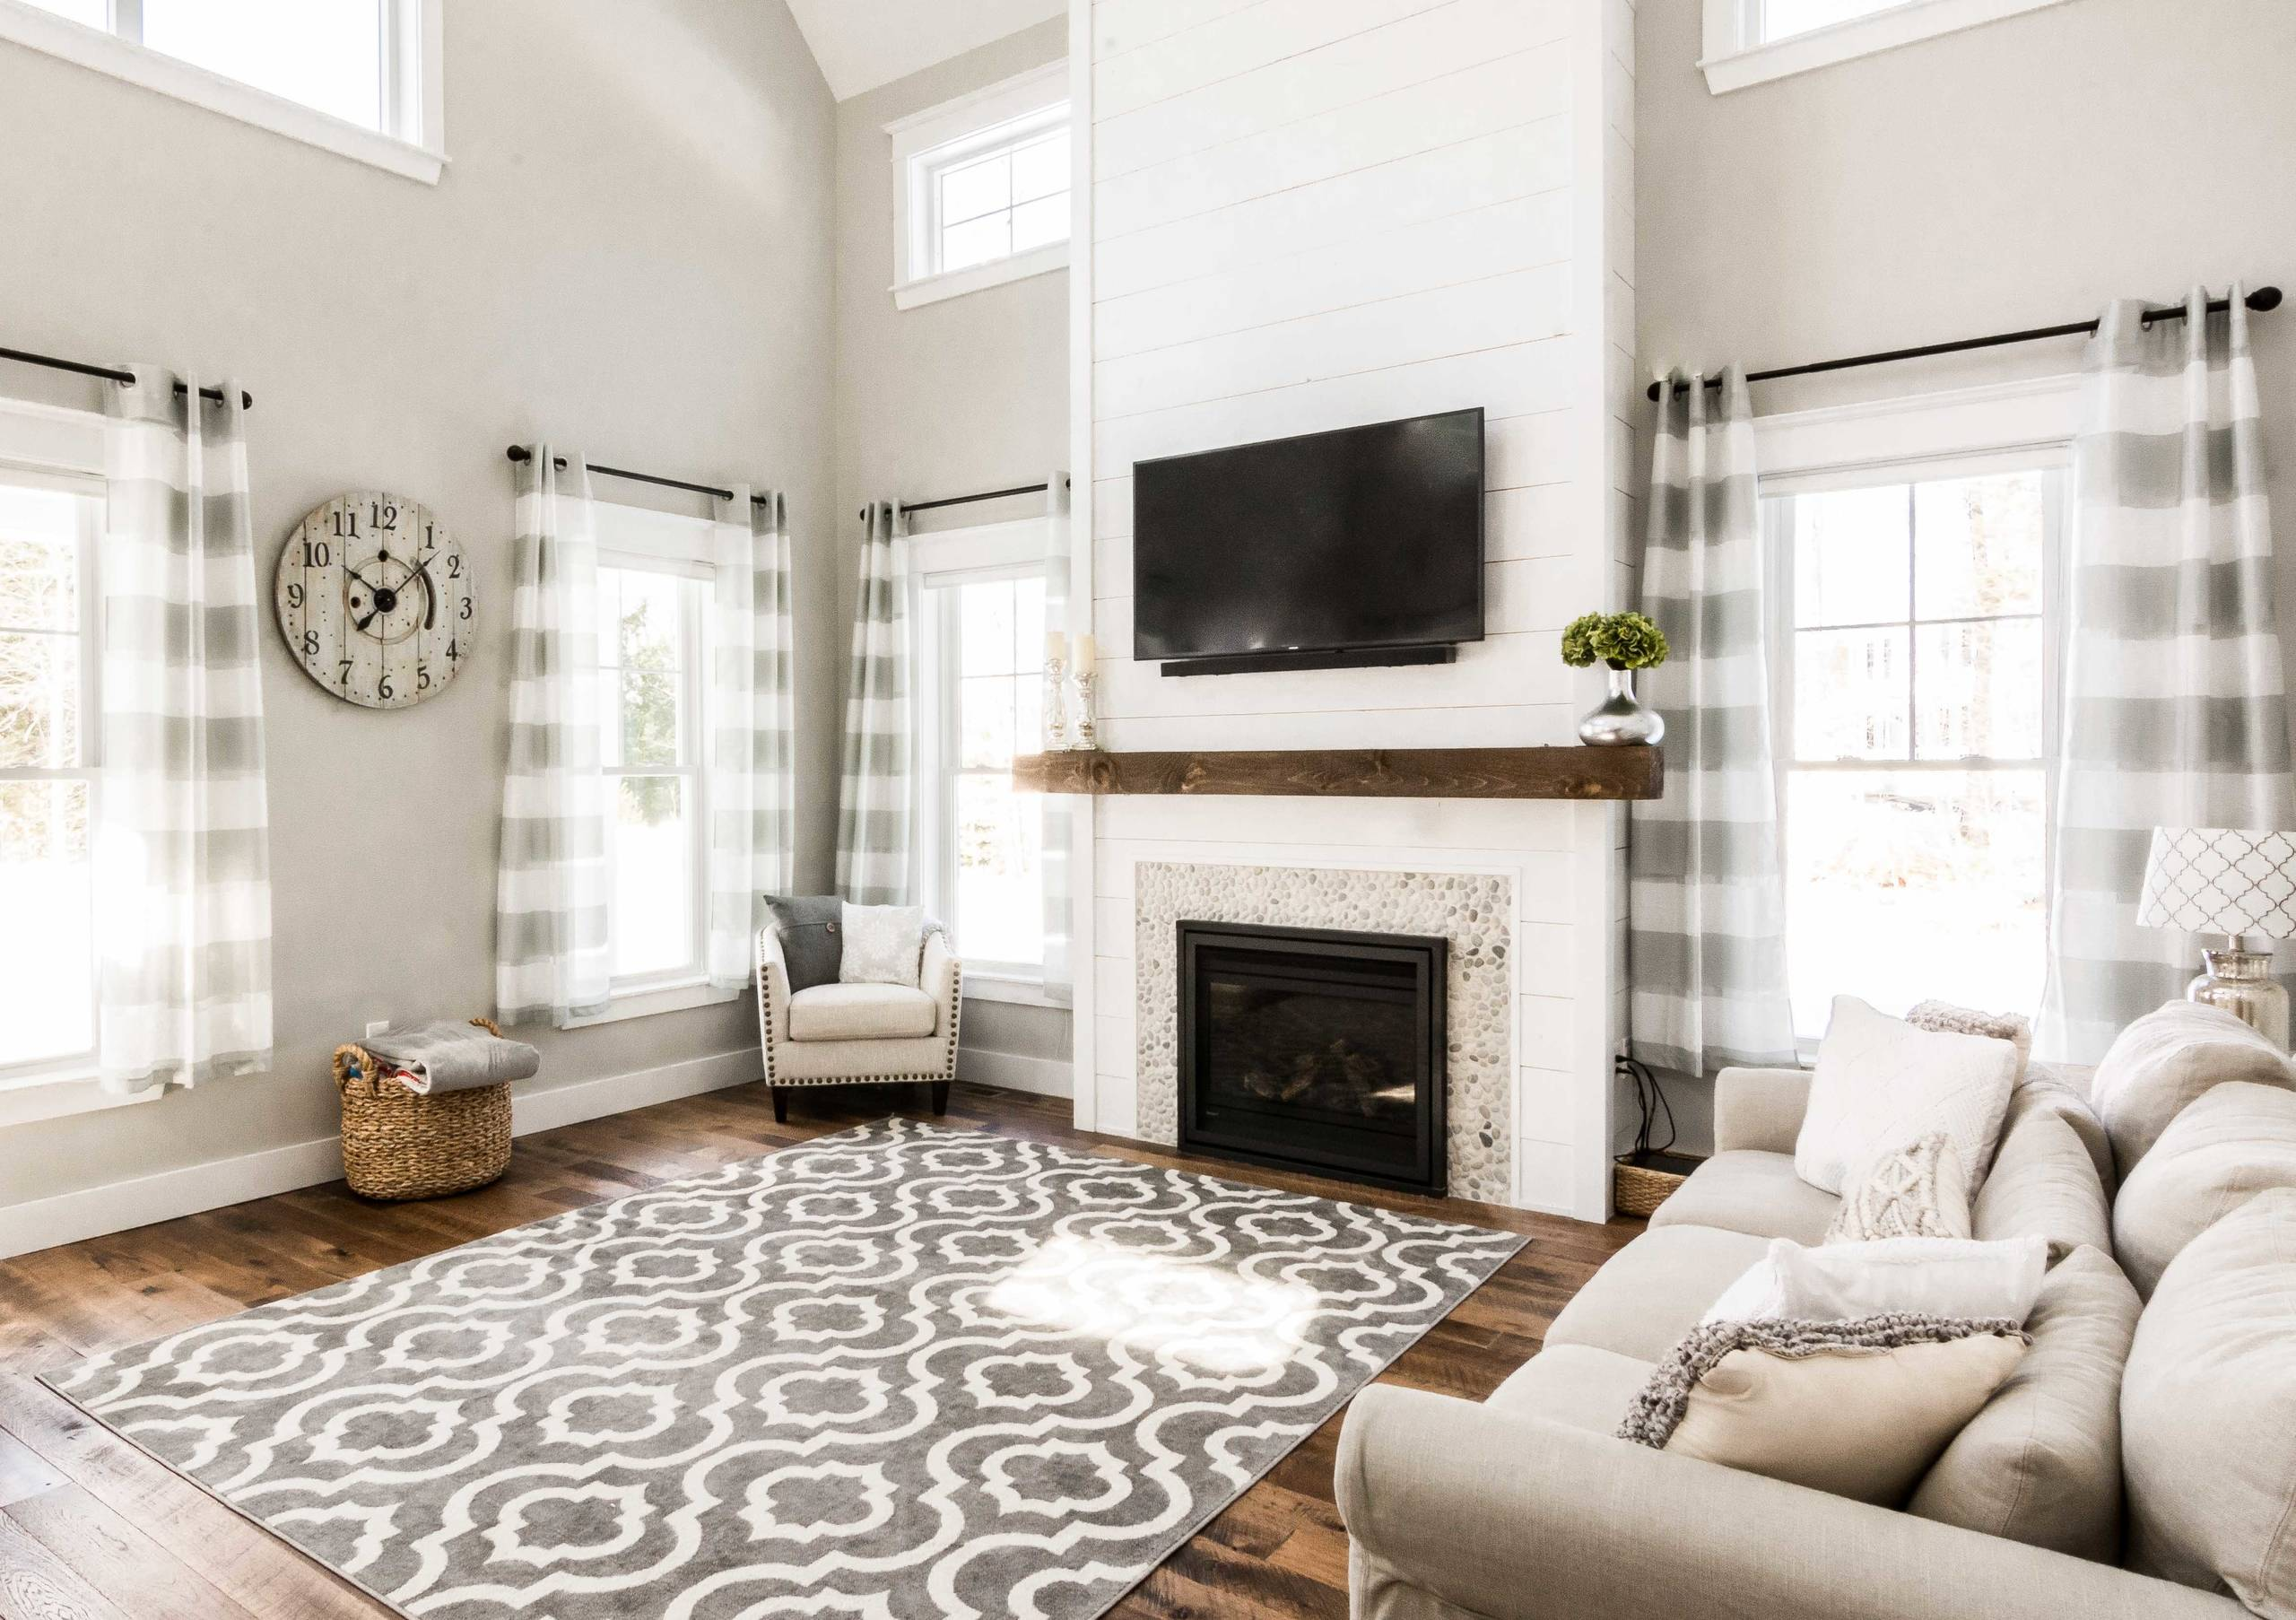 75 Beautiful Farmhouse Living Room With A Stone Fireplace Pictures Ideas January 2021 Houzz